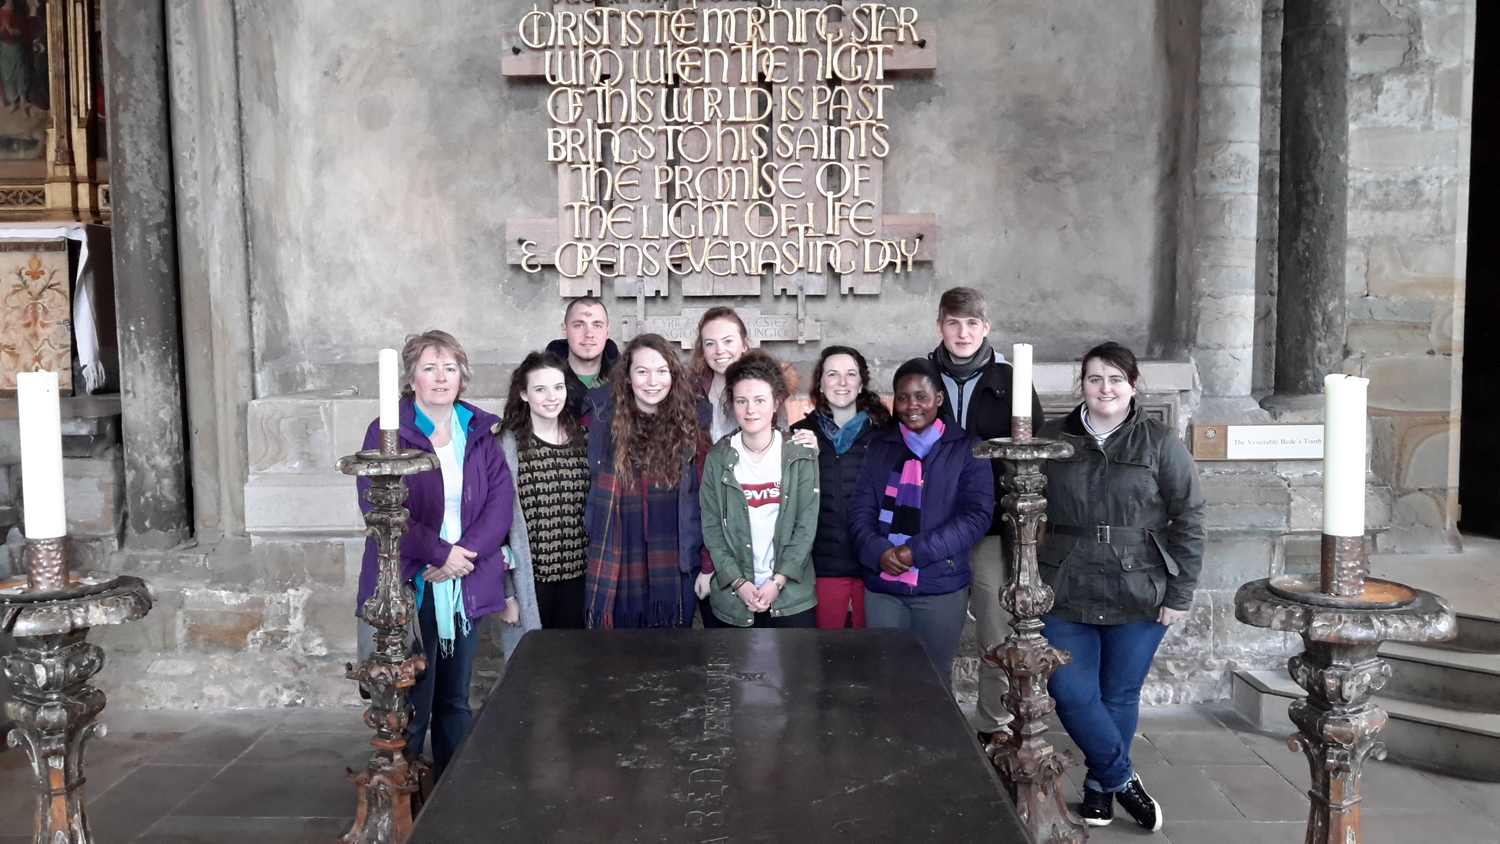 At the shrine of St Bede